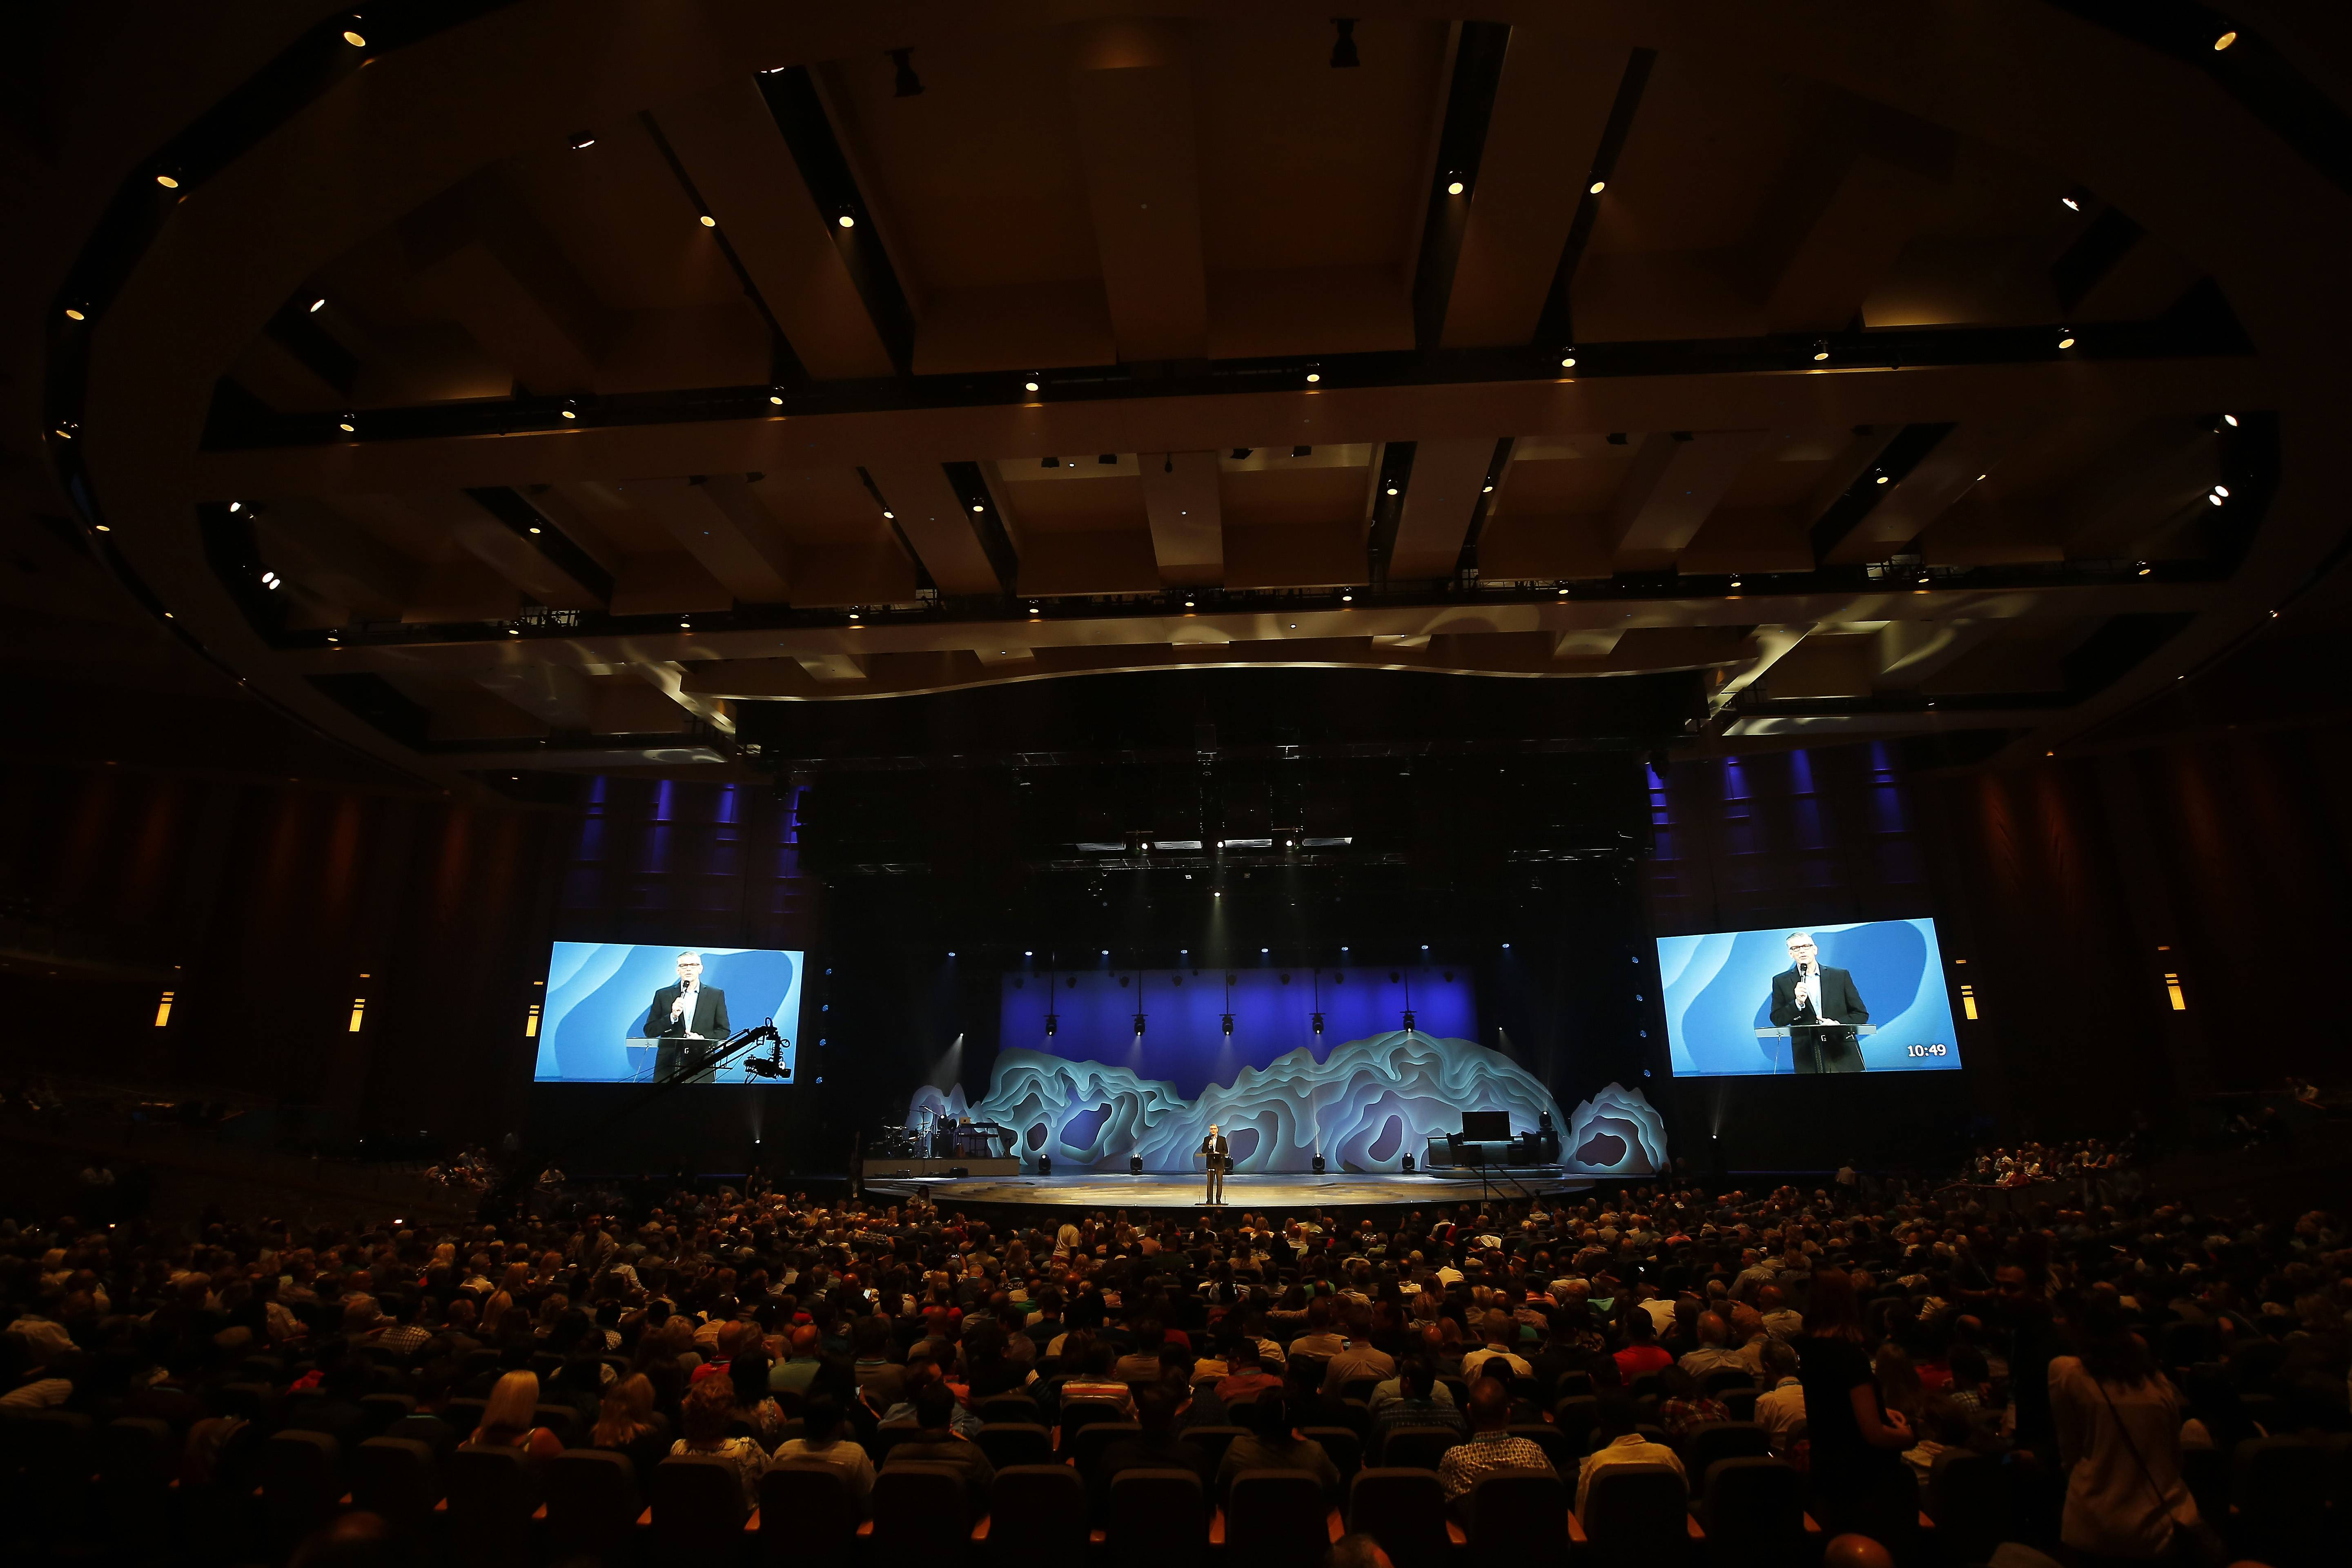 Tom De Vries, president and CEO of the Willow Creek Association, speaks to the crowd as the megachurch hosts its 23rd annual Global Leadership Summit Thursday in South Barrington.